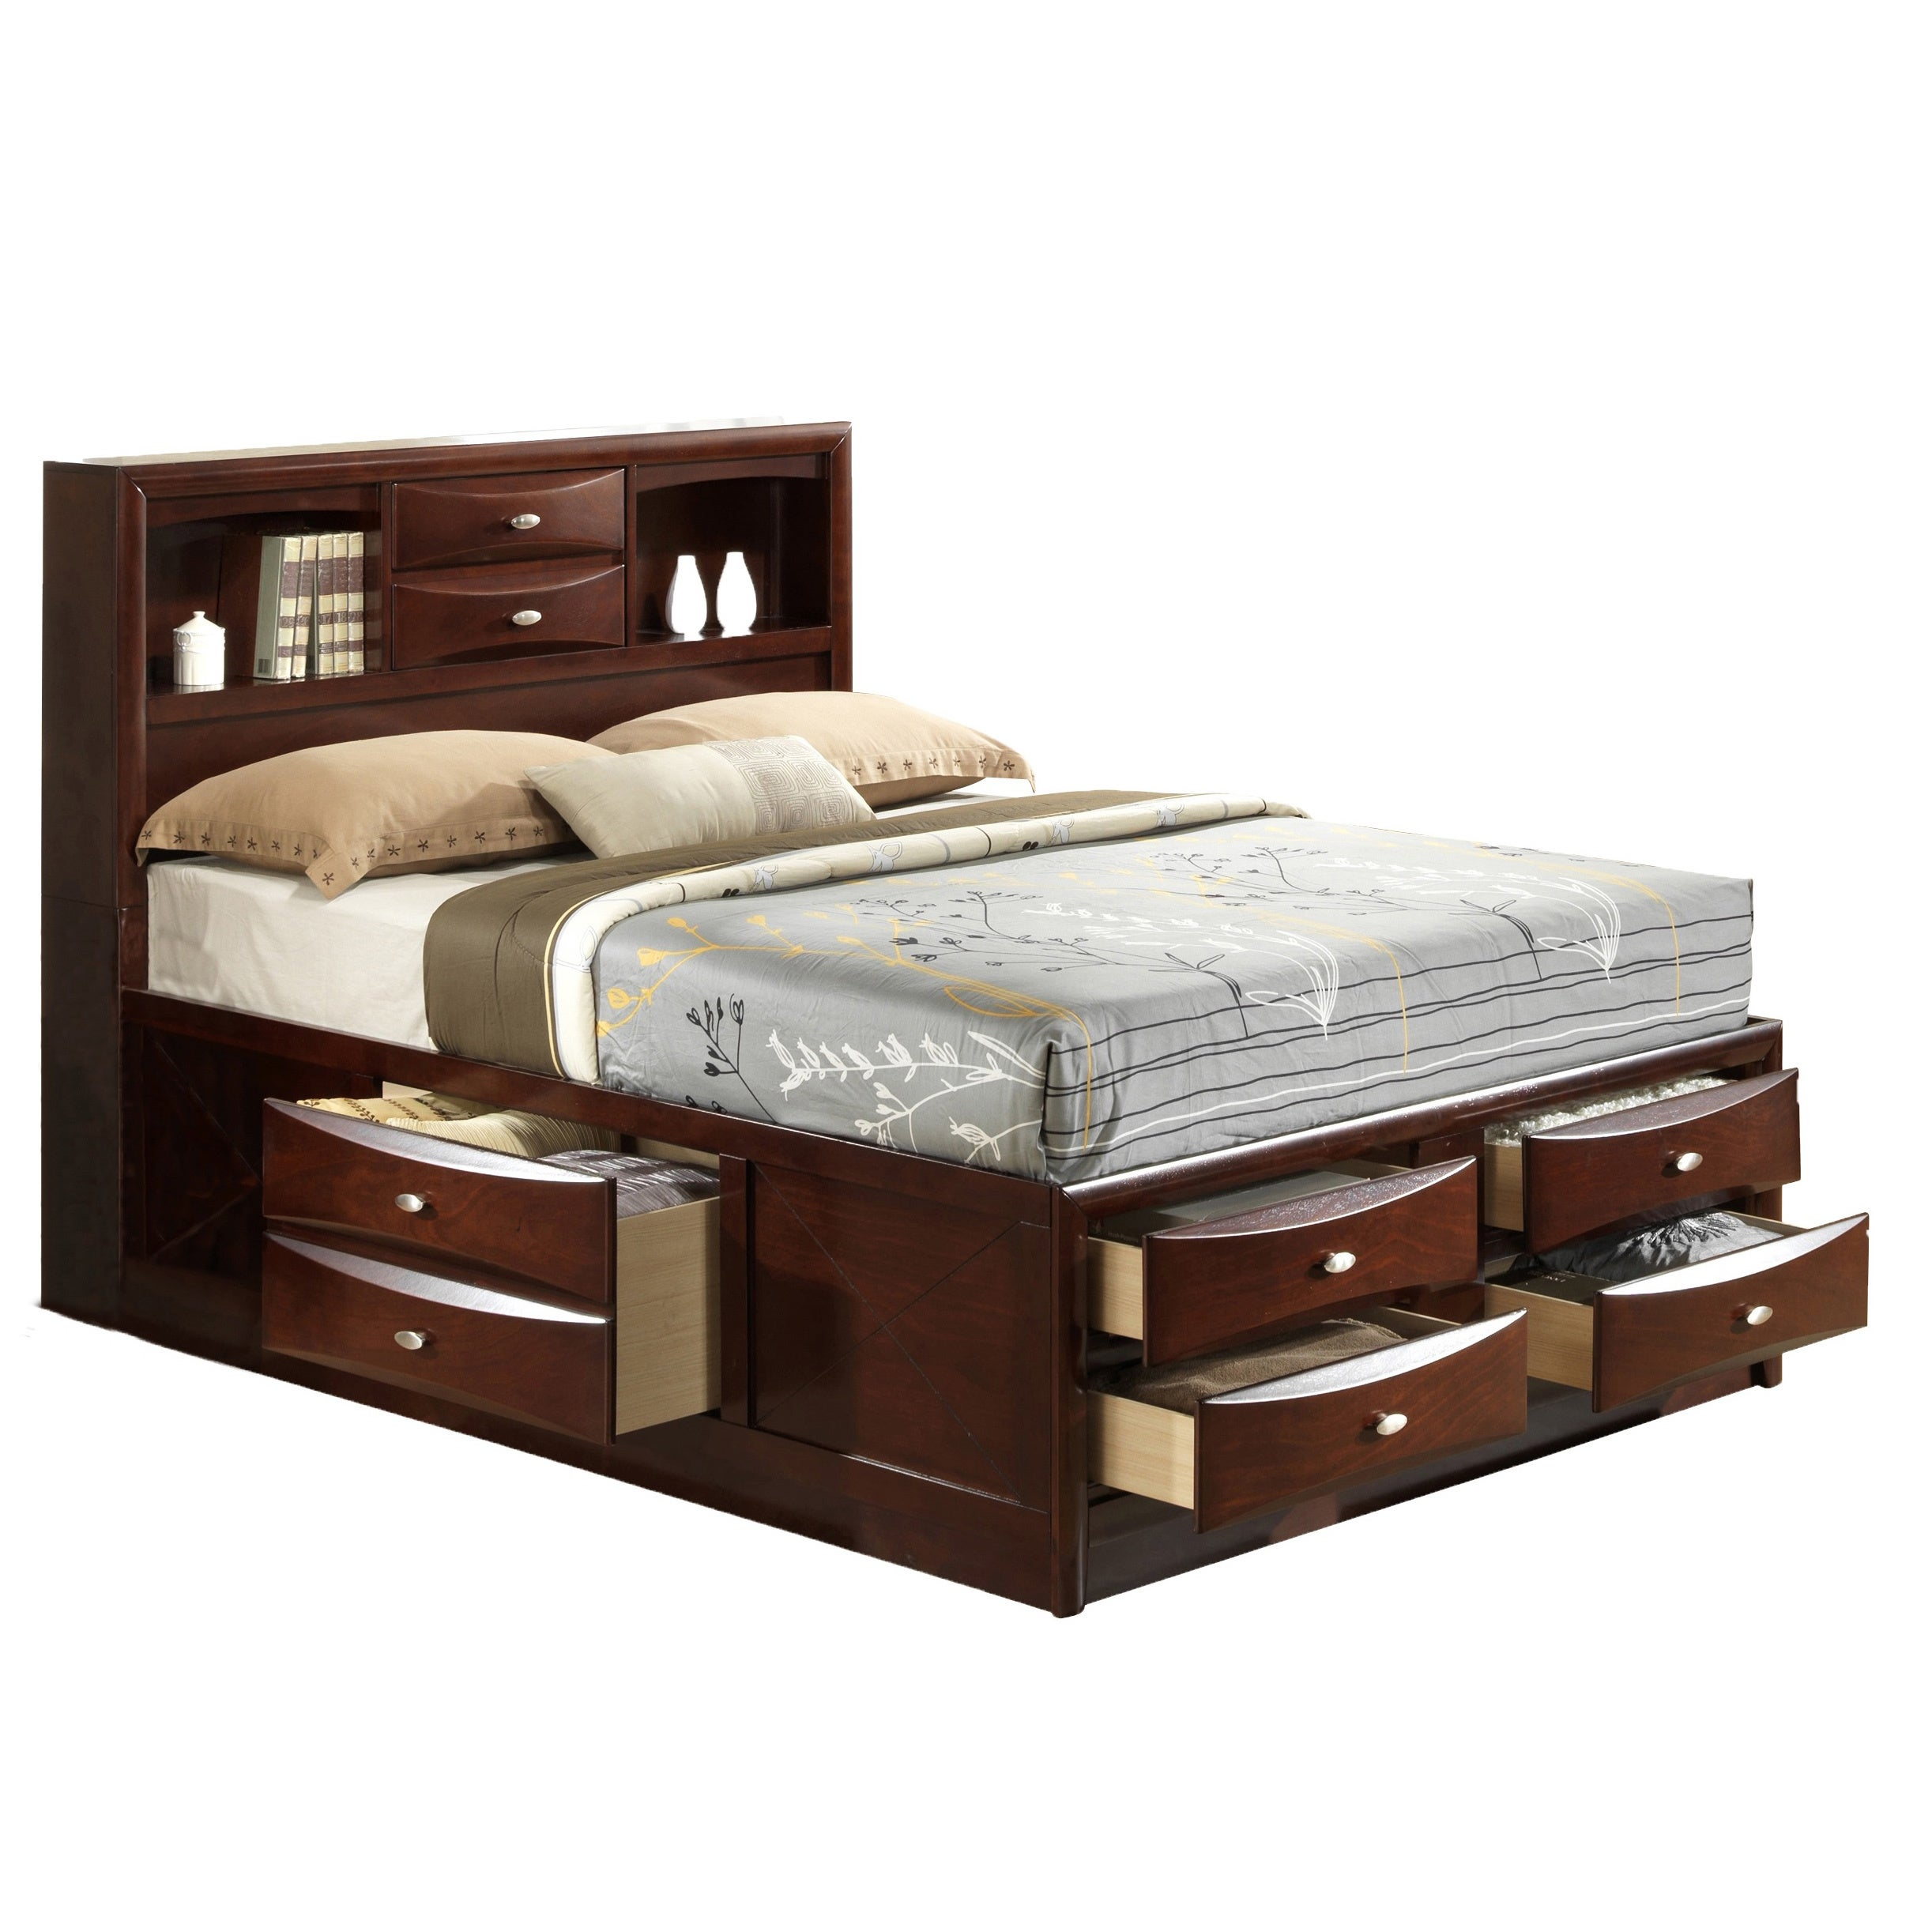 with queen drawers size product garden home shipping beds storage linda free today bed merlot